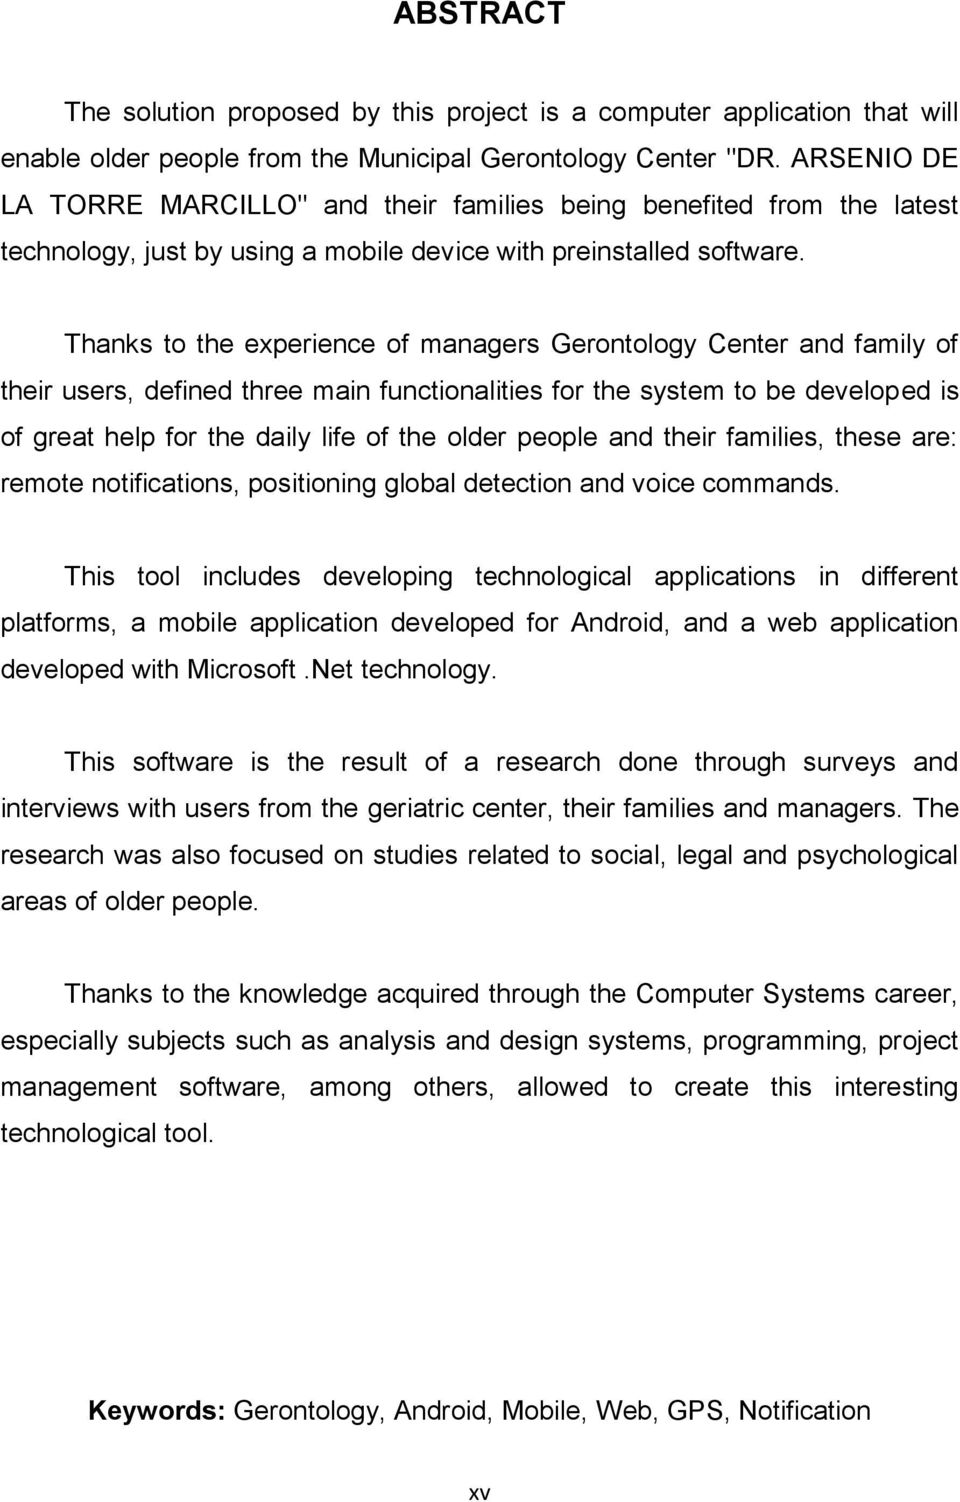 Thanks to the experience of managers Gerontology Center and family of their users, defined three main functionalities for the system to be developed is of great help for the daily life of the older